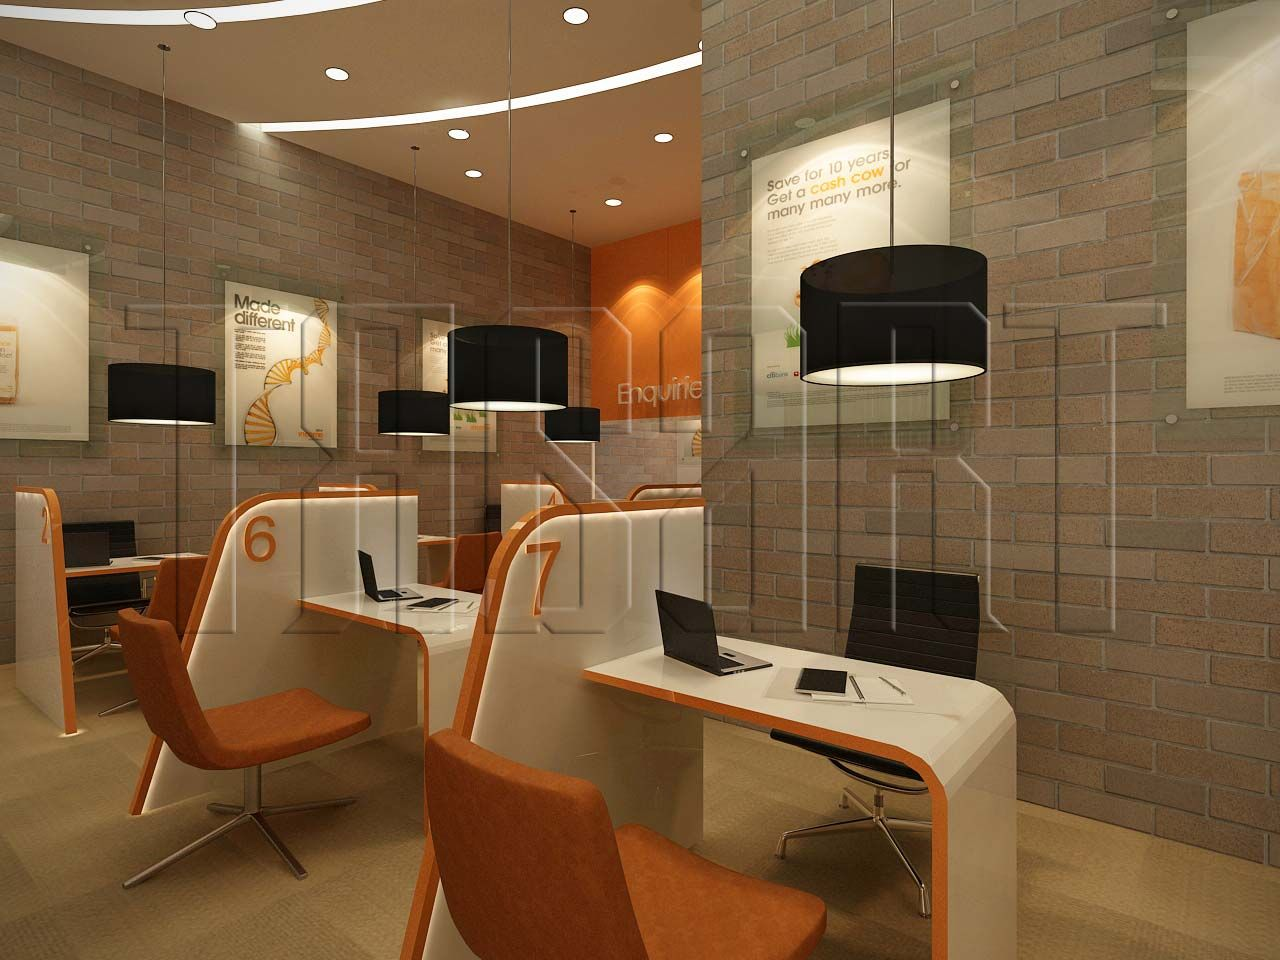 A modern futuristic look for a customer service counter for Interior design services